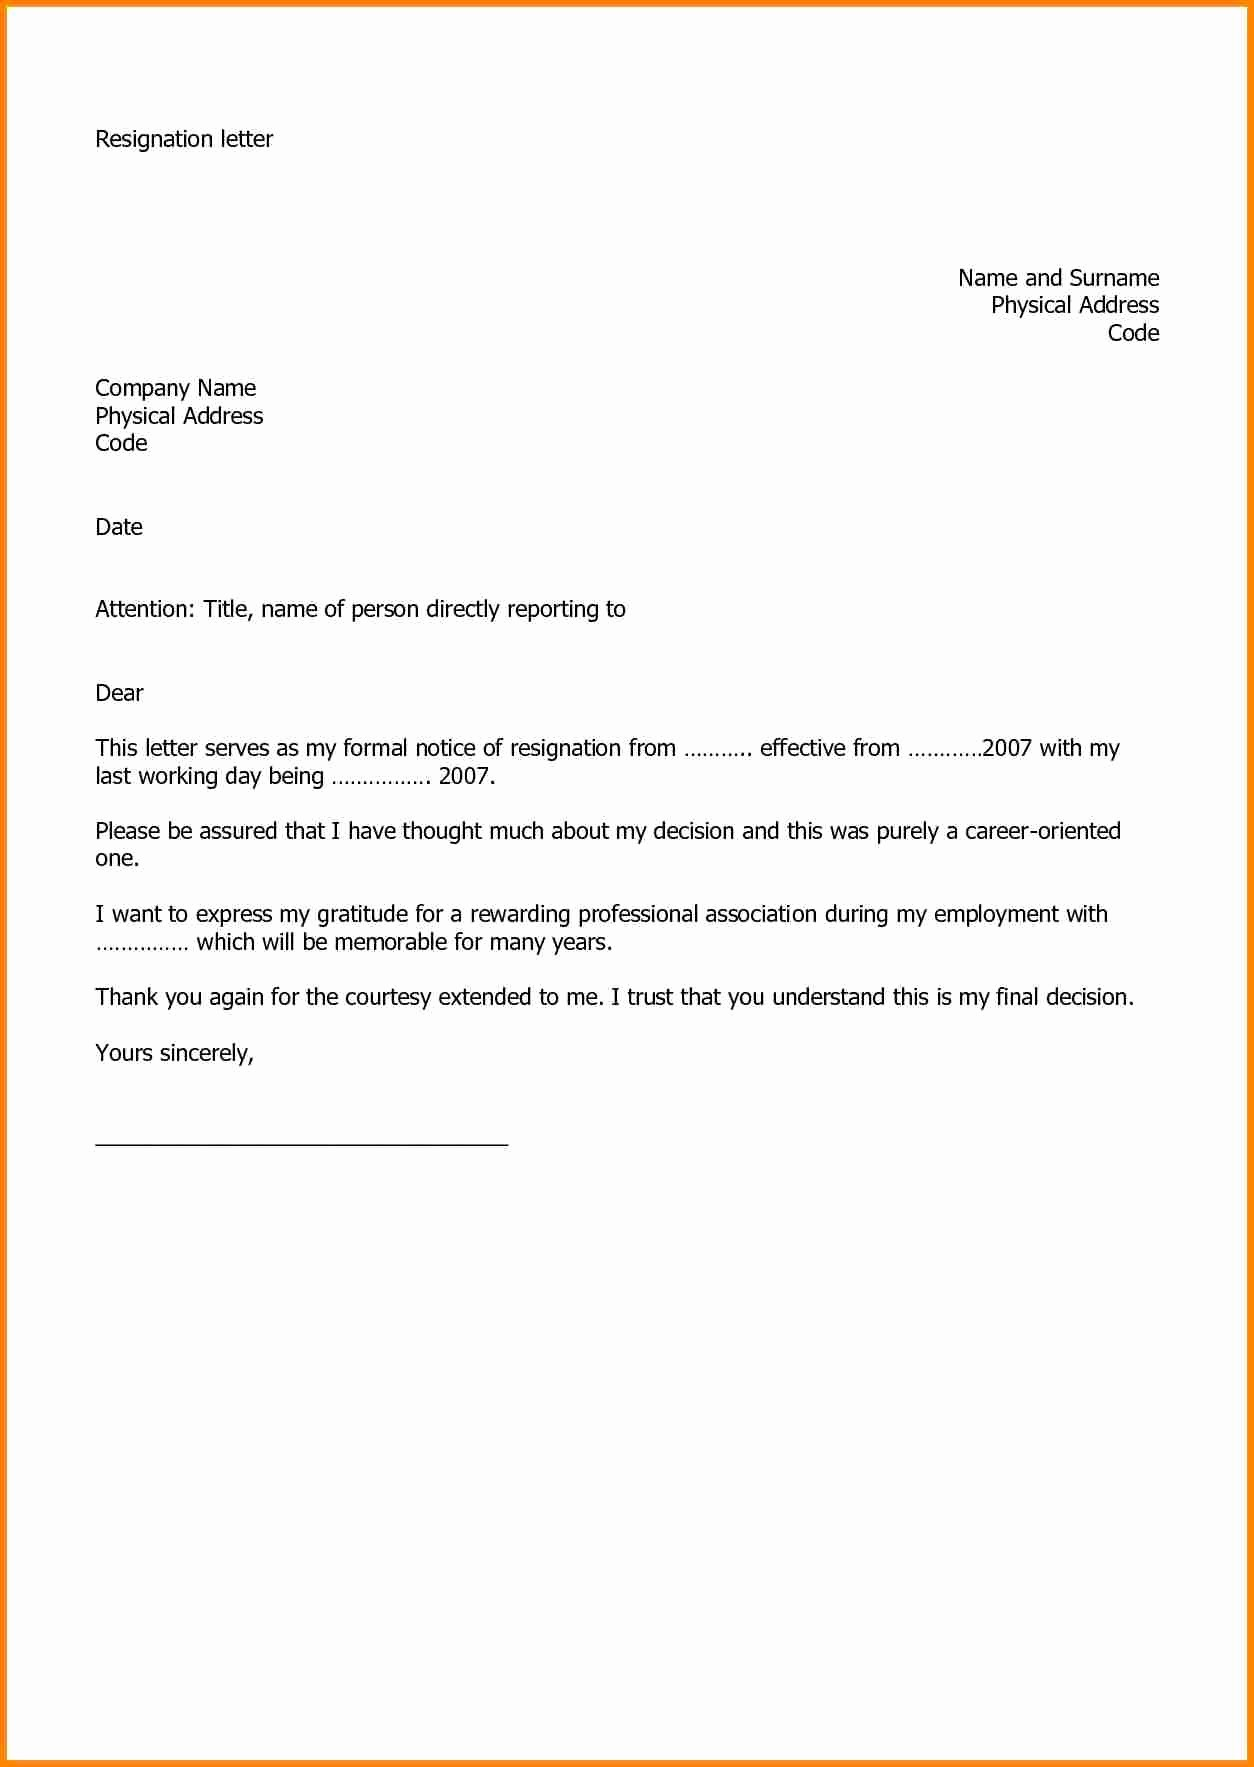 Letter Of Resignation Template Microsoft Luxury 5 Microsoft Word Letter Of Resignation Template